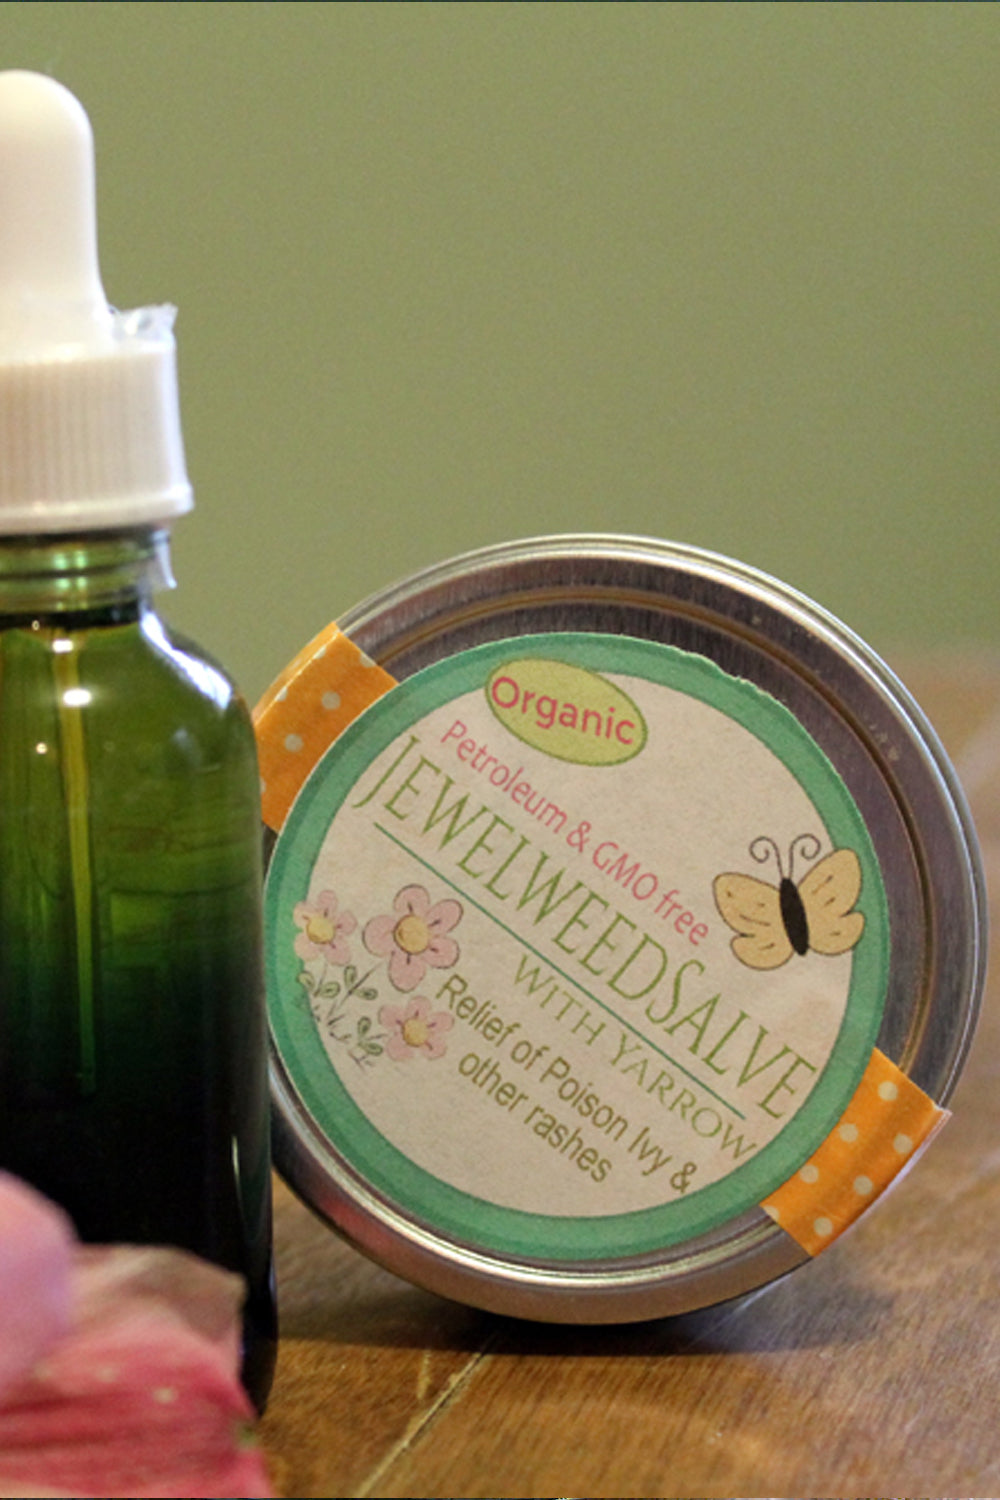 Jewelweed Herbal Salve - Lizzy Lane Farm Apothecary